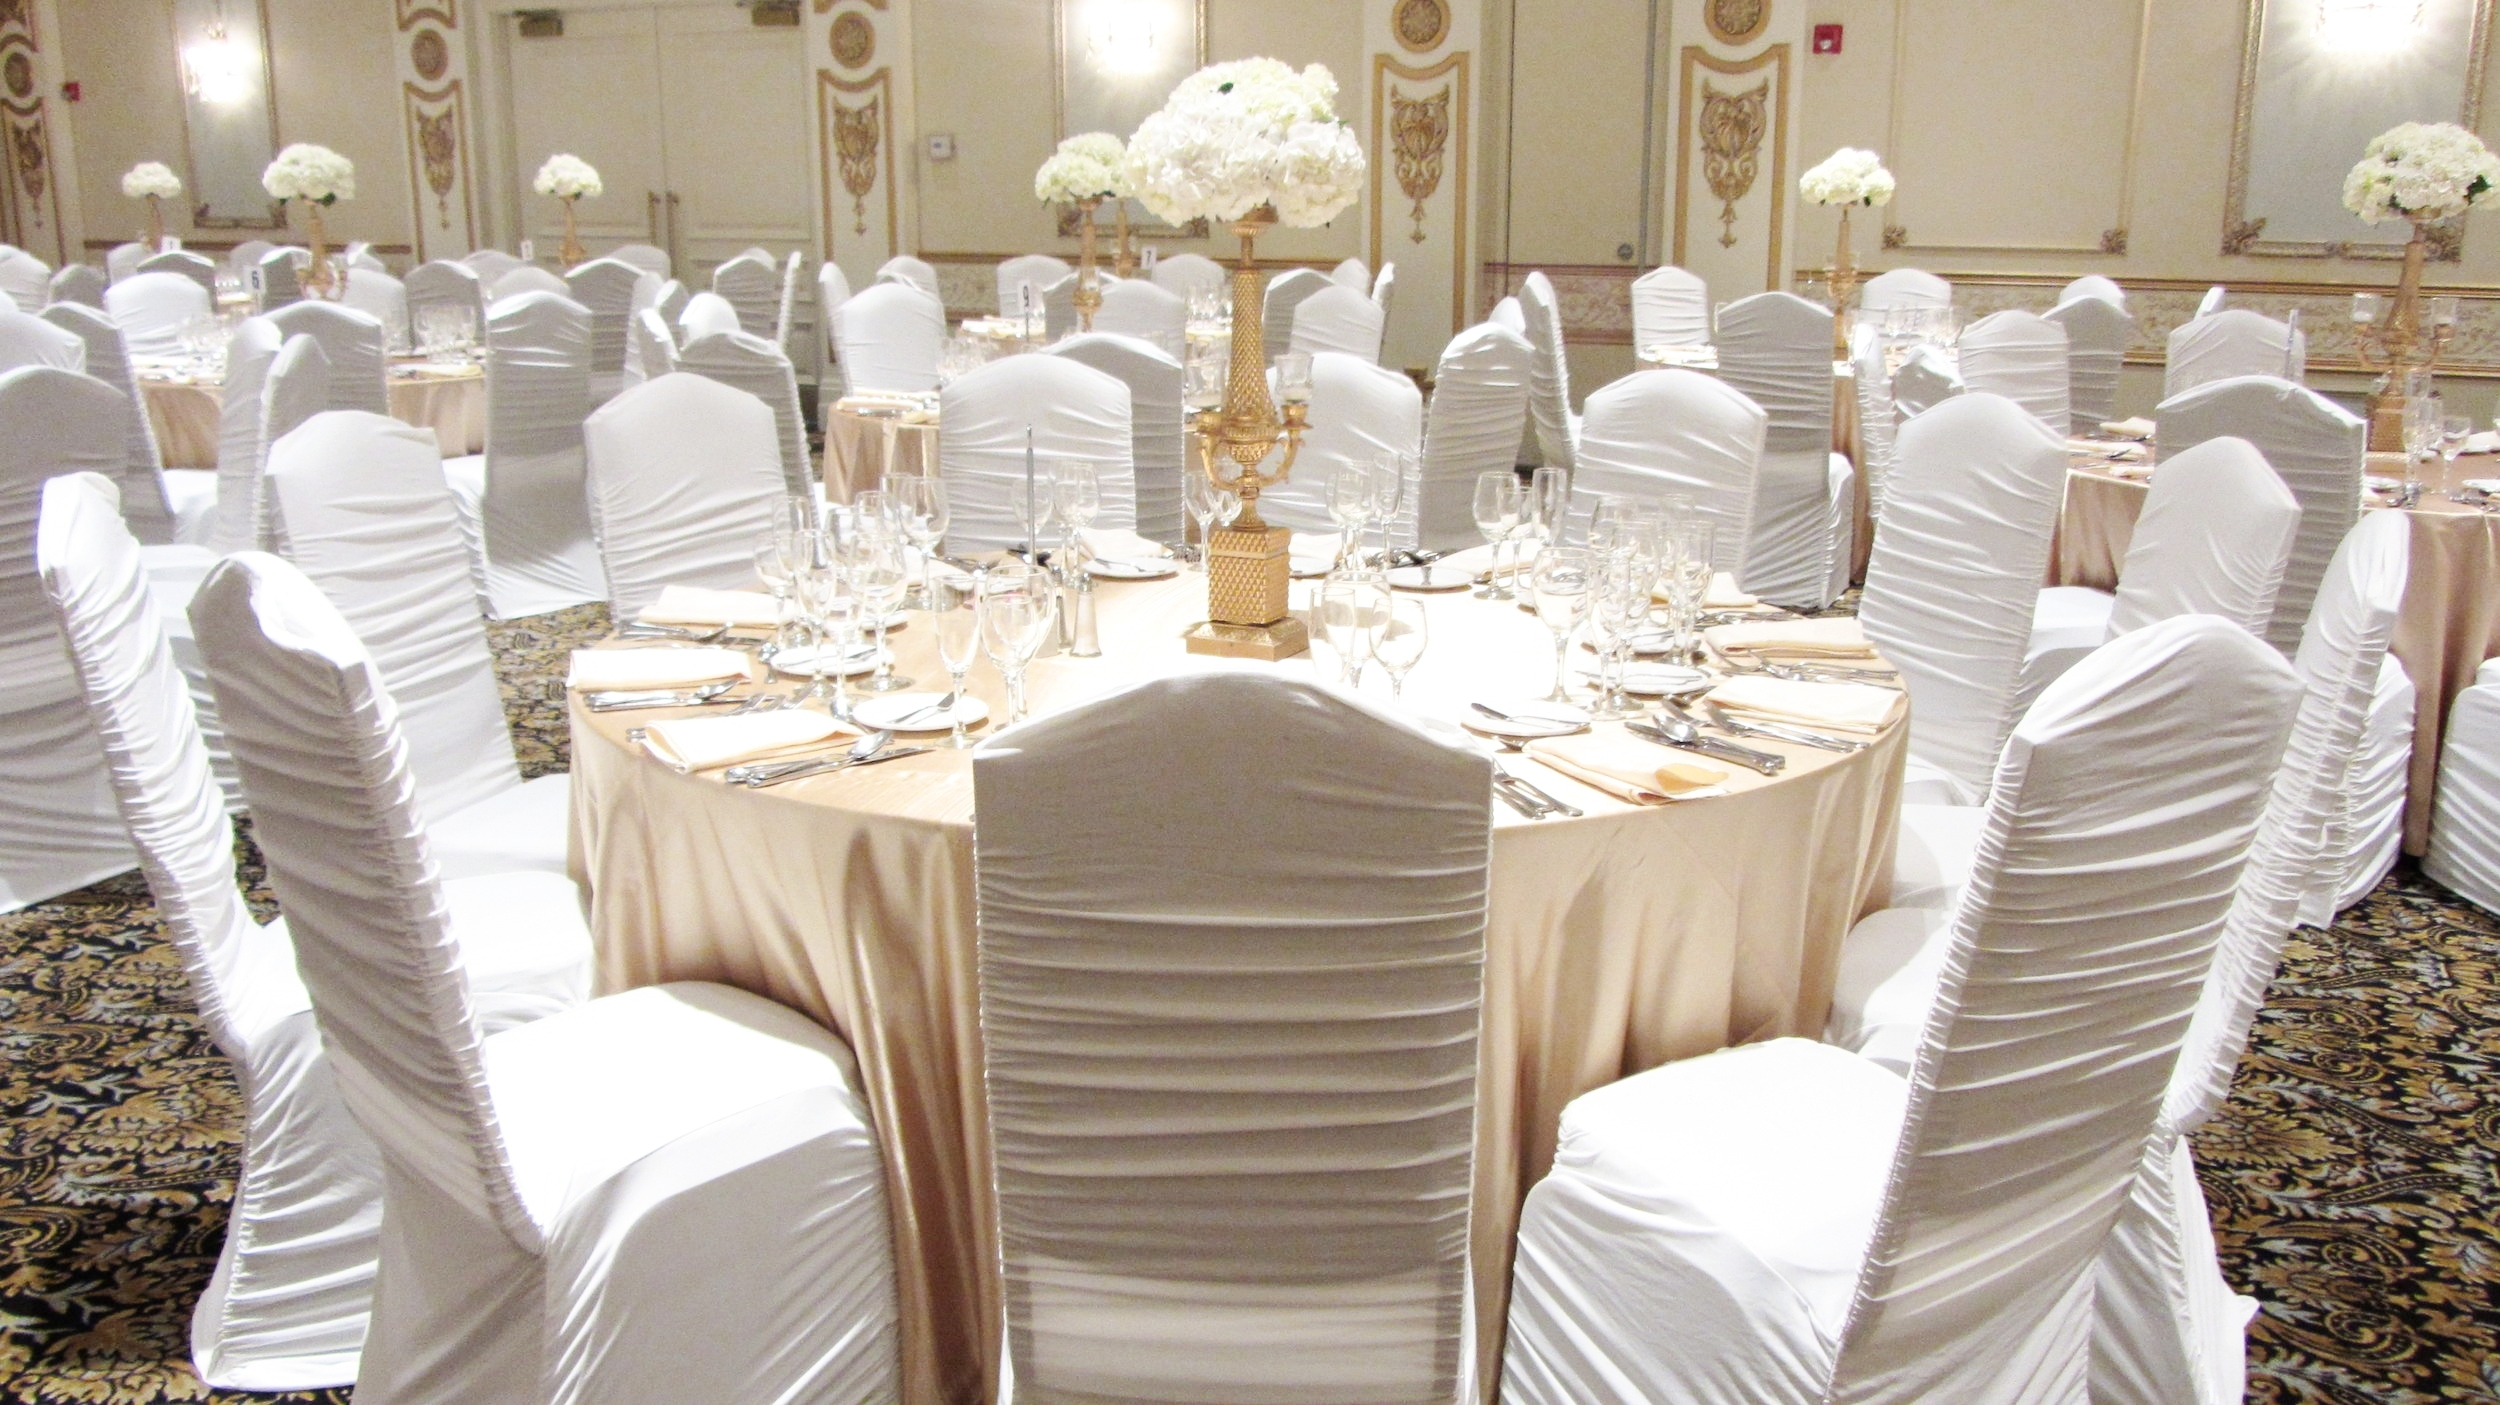 chair covers gladstone brown metal folding chairs wedding decorations mapleleaf linens